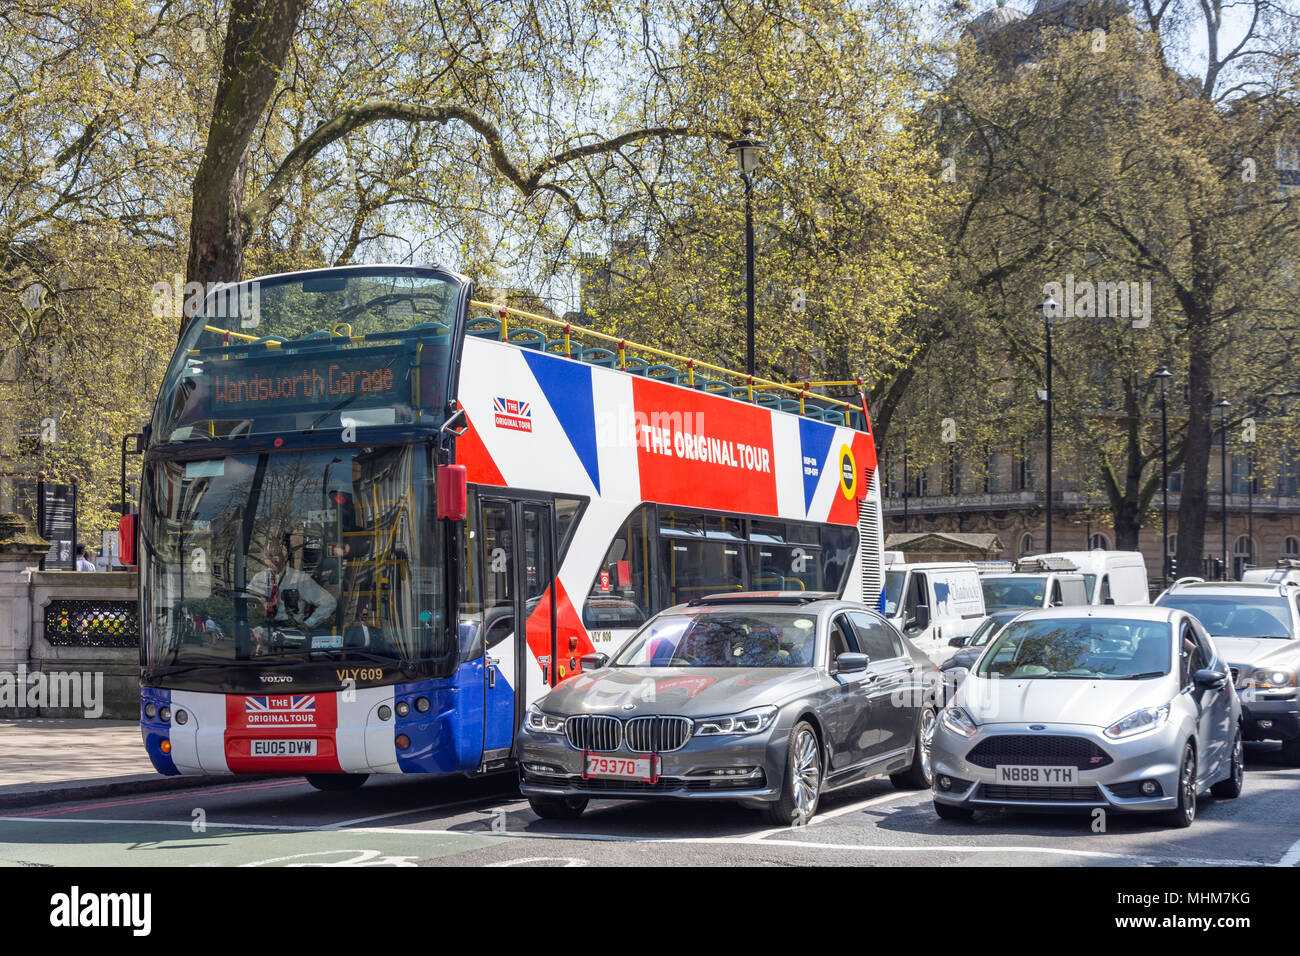 Traffic waiting at traffic lights, Buckingham Palace Road, Victoria, City of Westminster, Greater London, England, United Kingdom - Stock Image